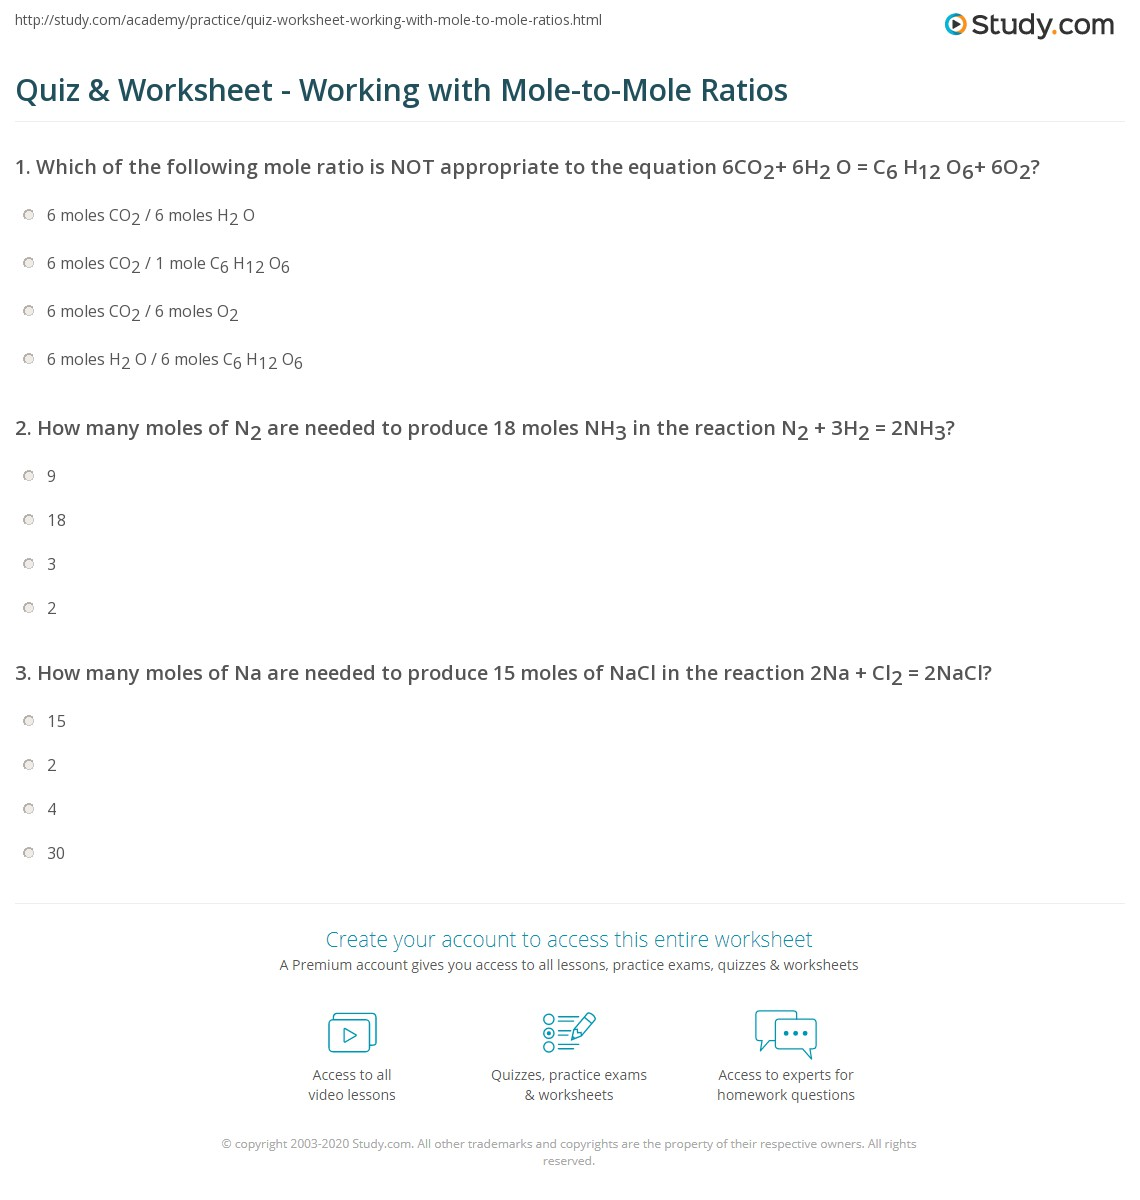 Worksheets Mole Ratio Worksheet quiz worksheet working with mole to ratios study com print and calculations of a chemical equation worksheet